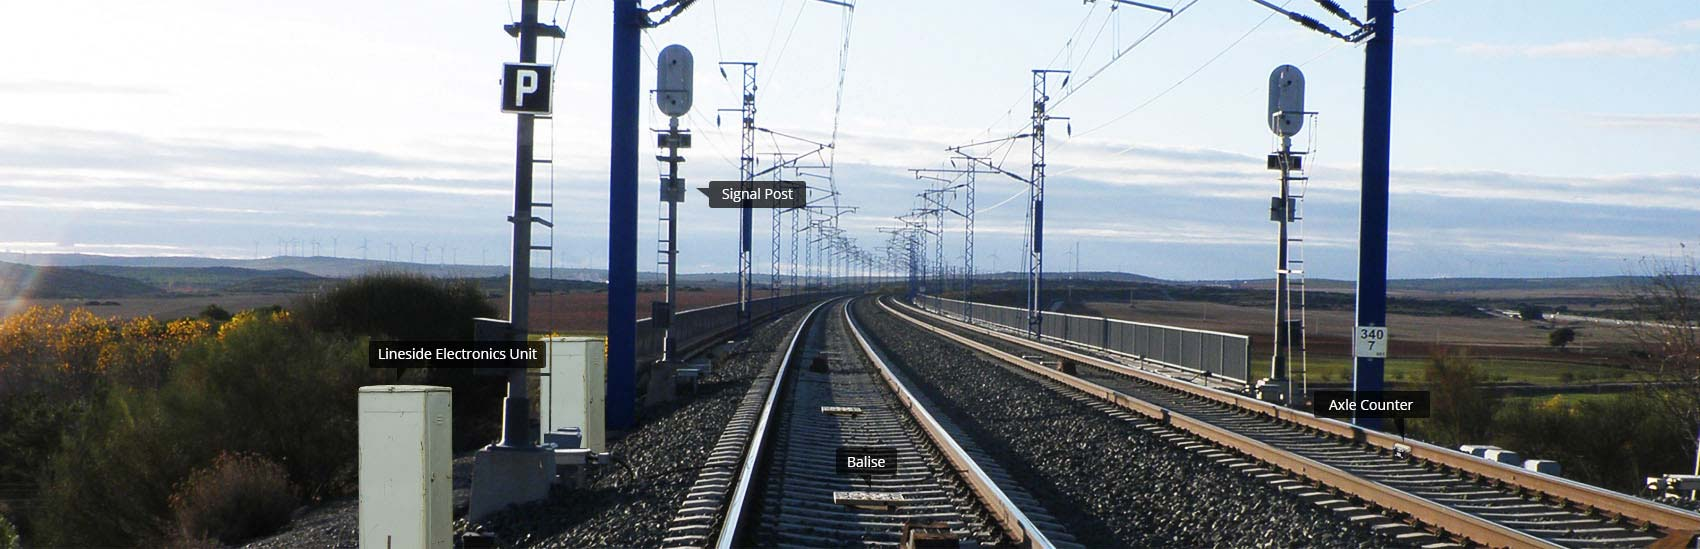 Train Protection and Management Systems solutions